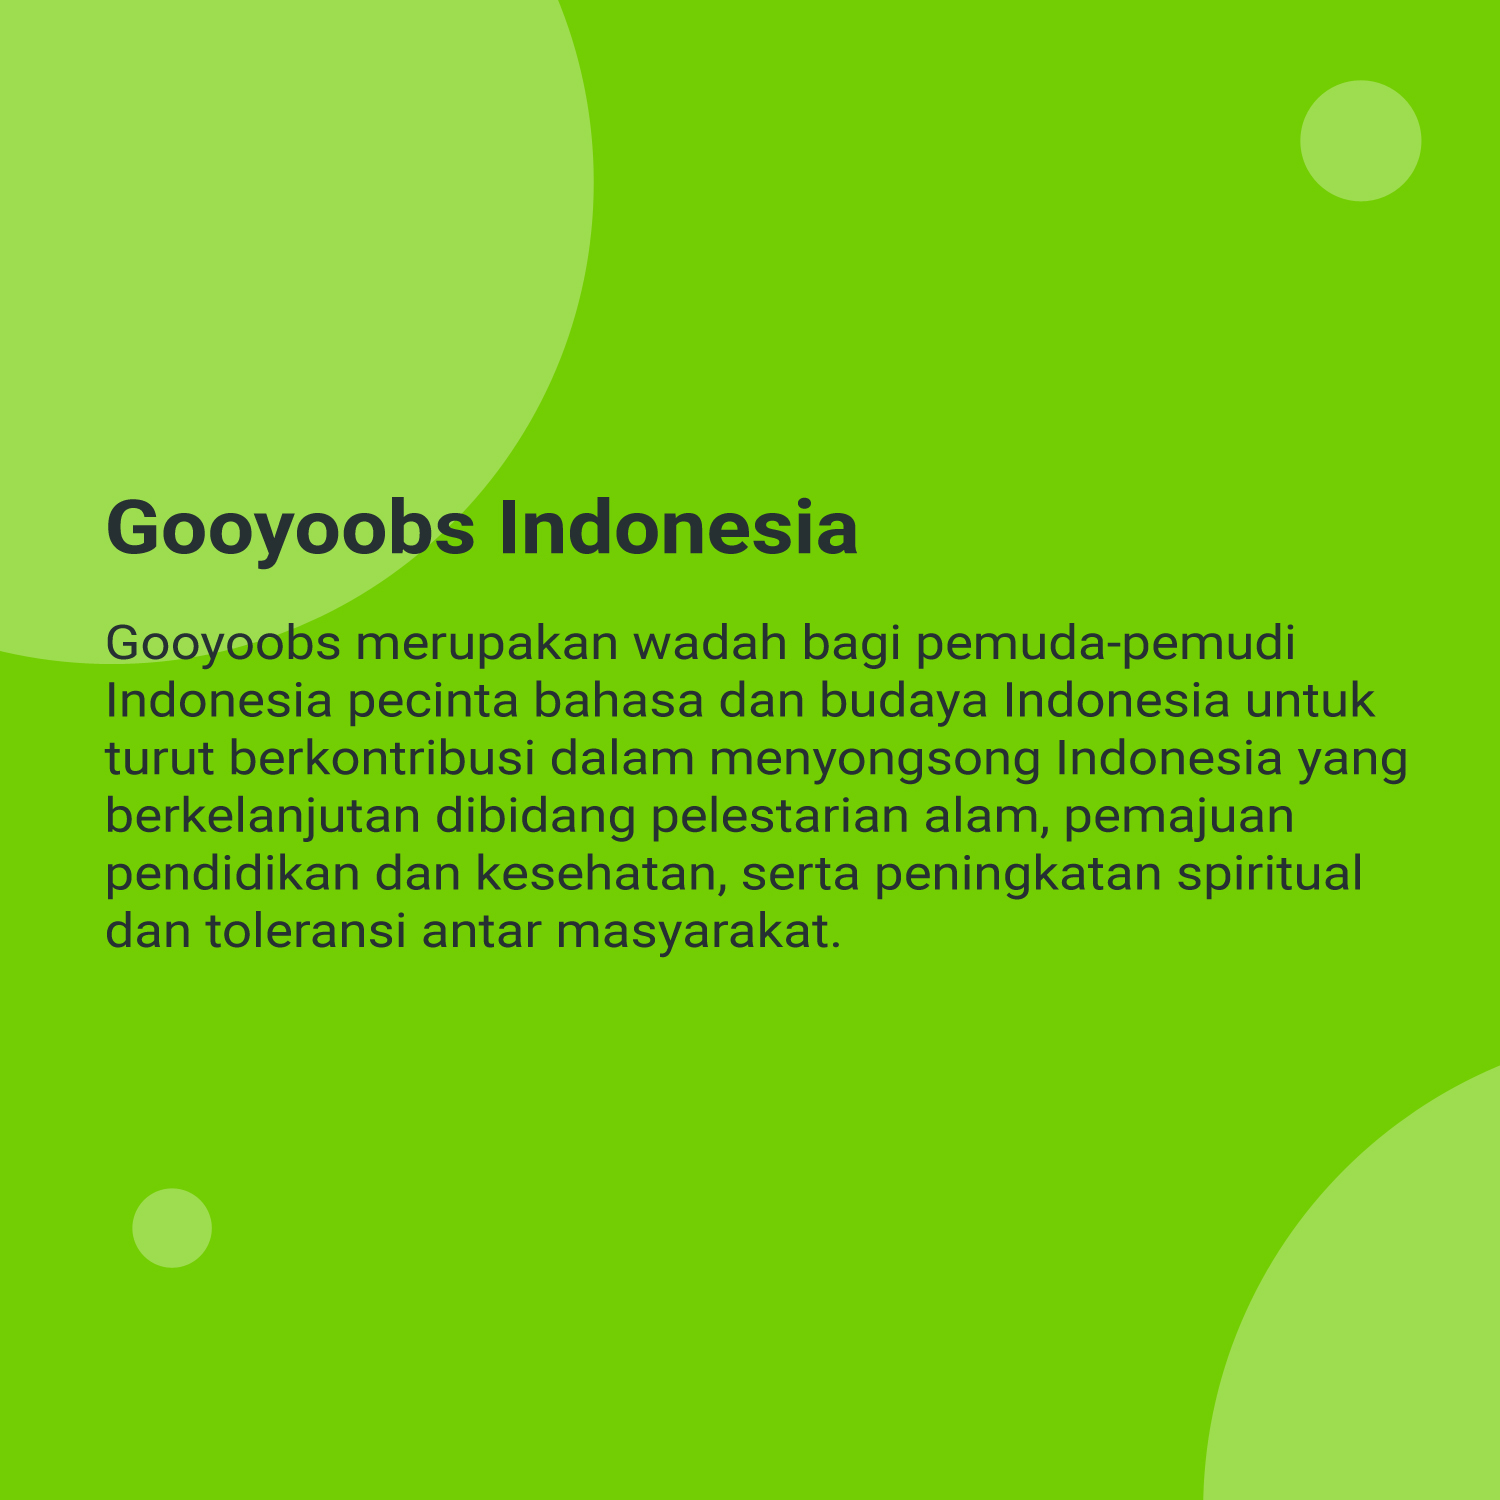 Gooyoobs Indonesia